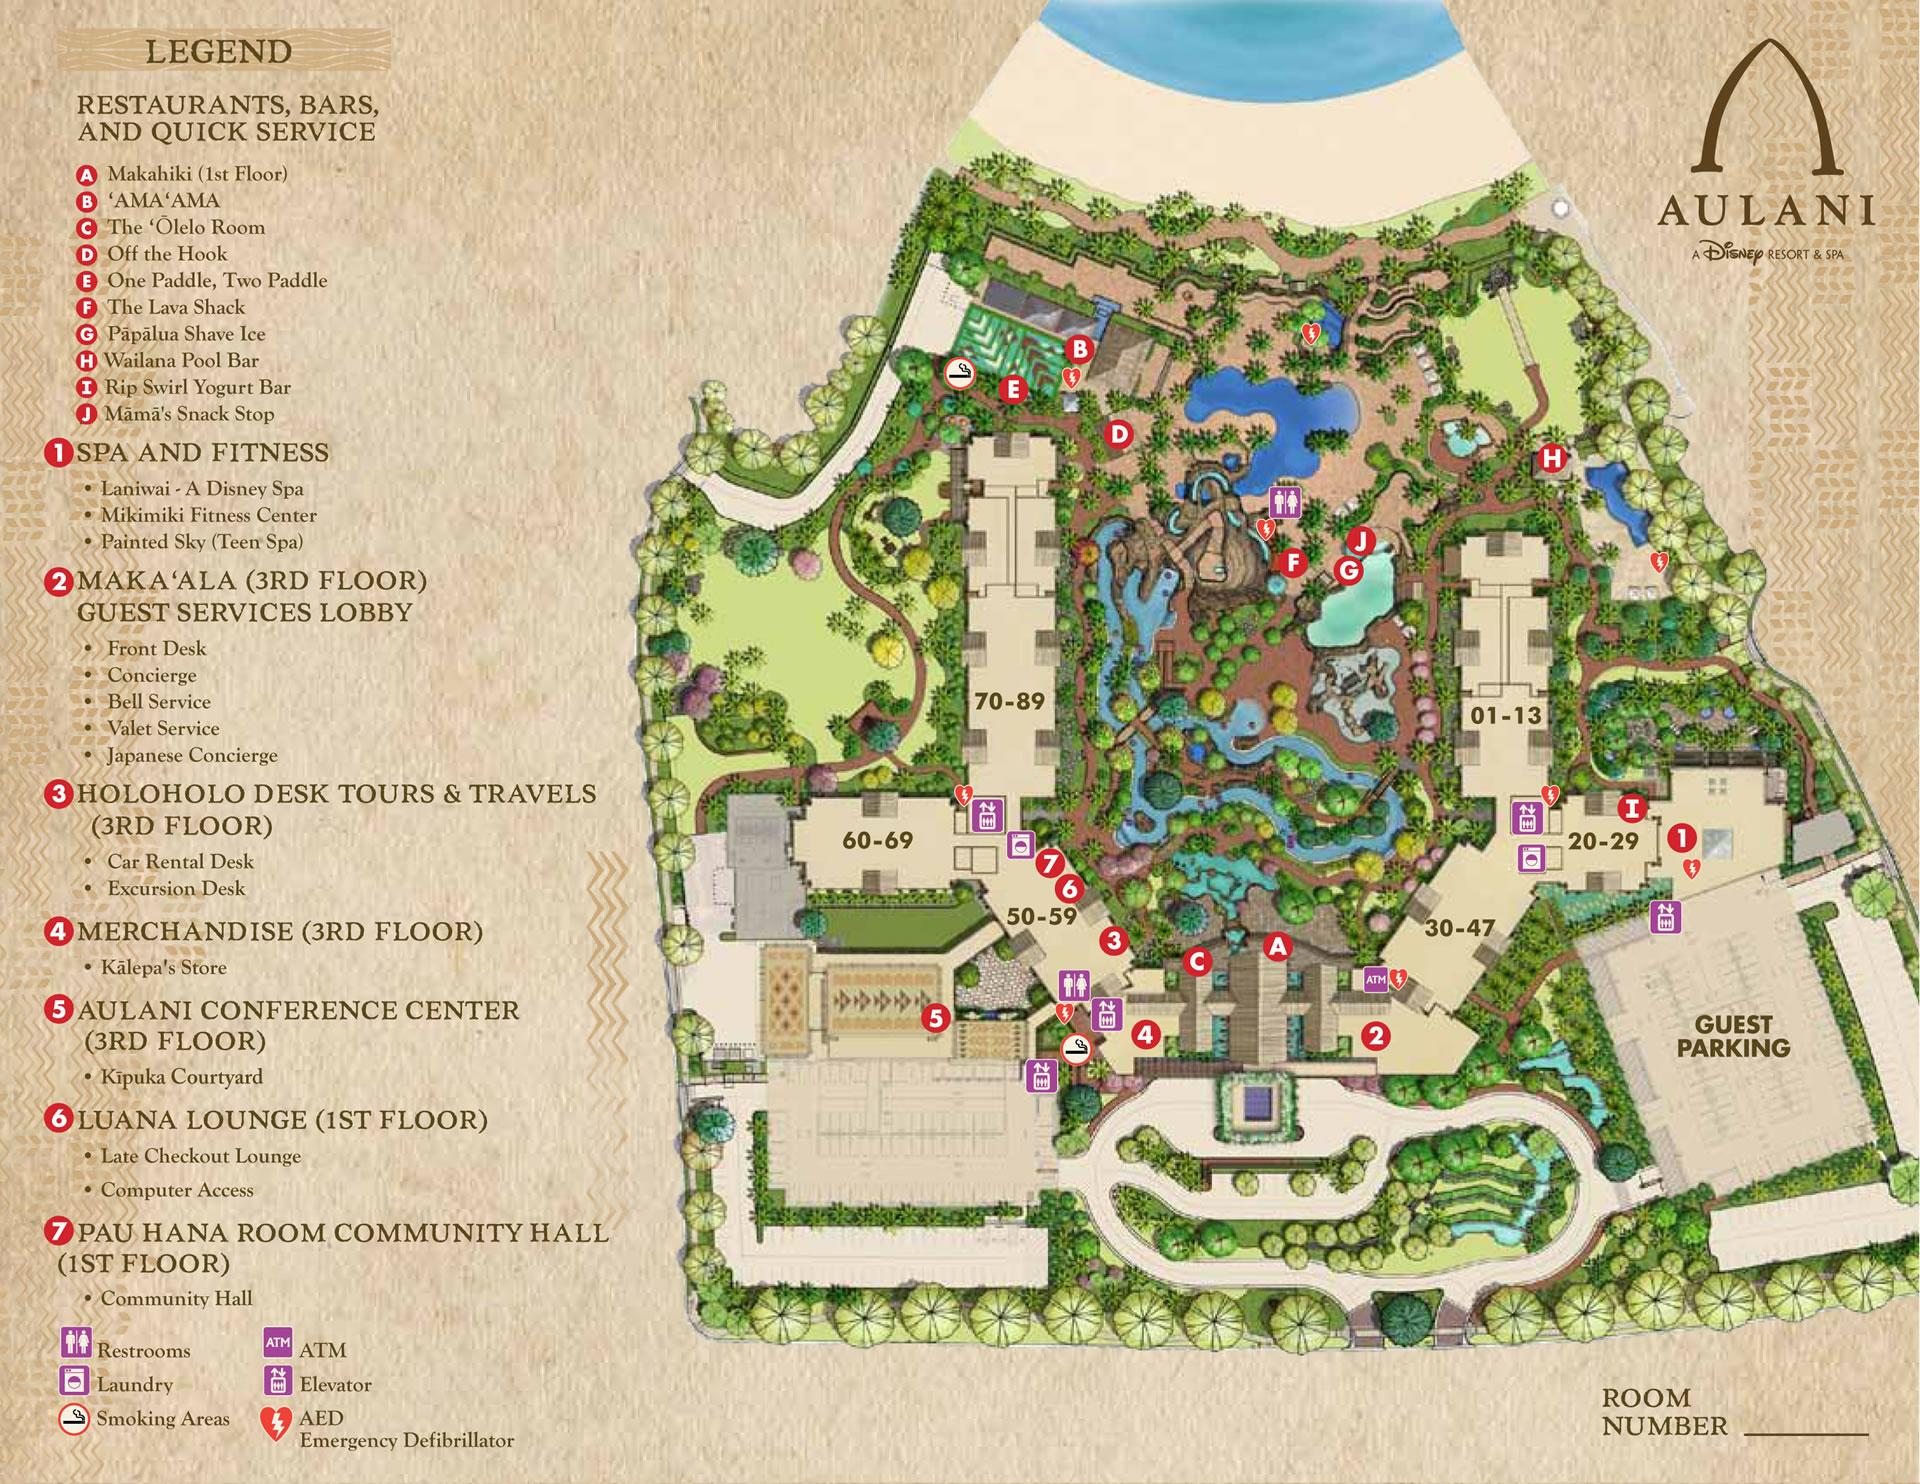 aulani resort map-1